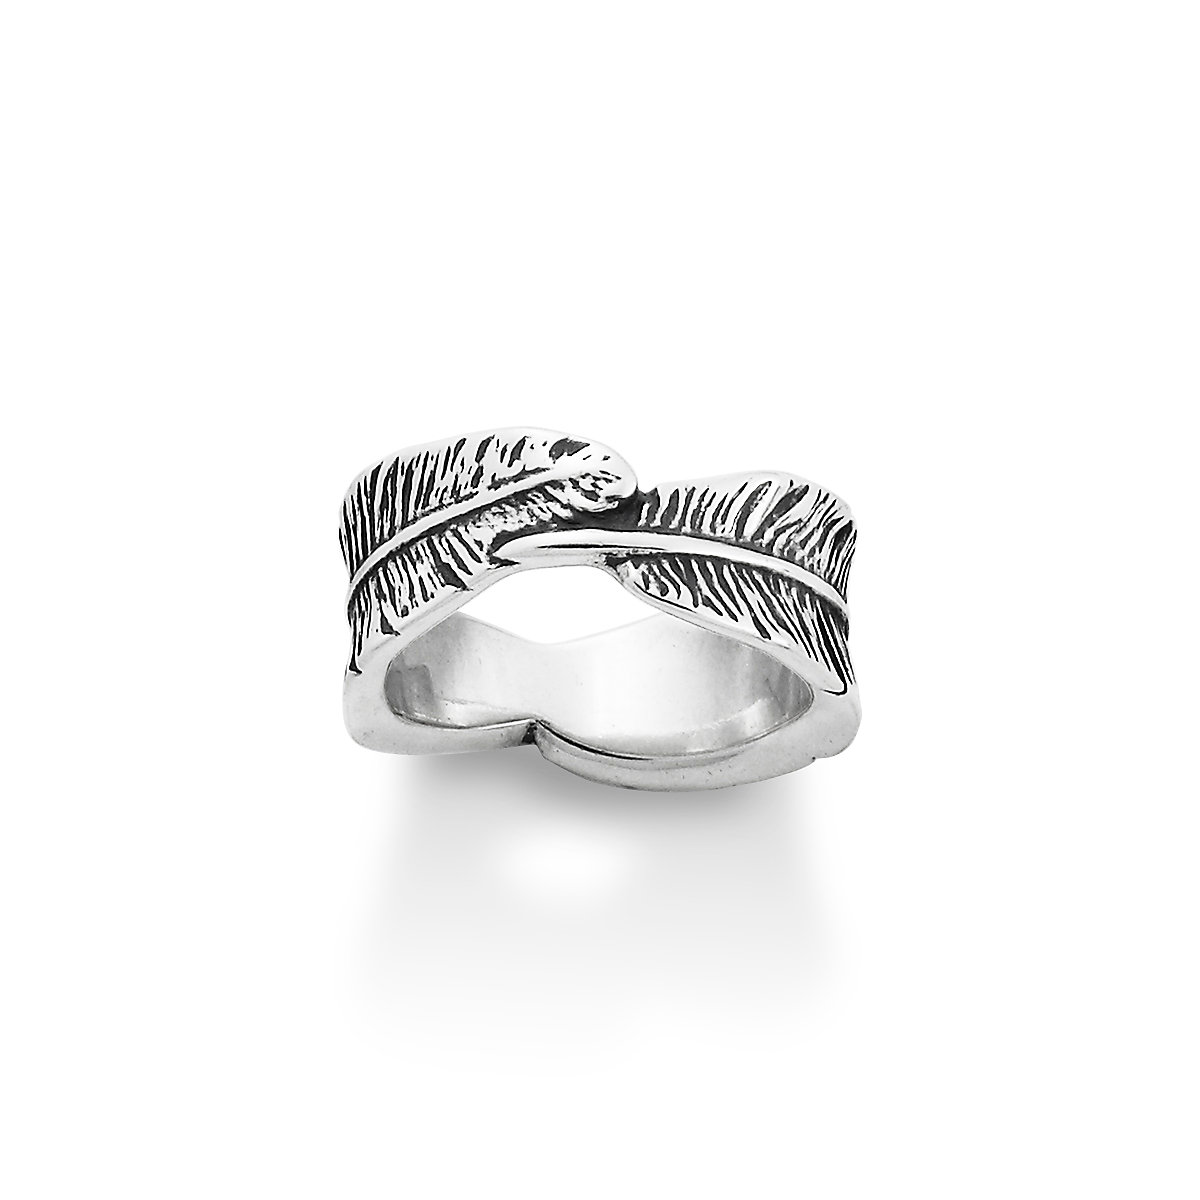 Birds of a Feather Ring - James Avery